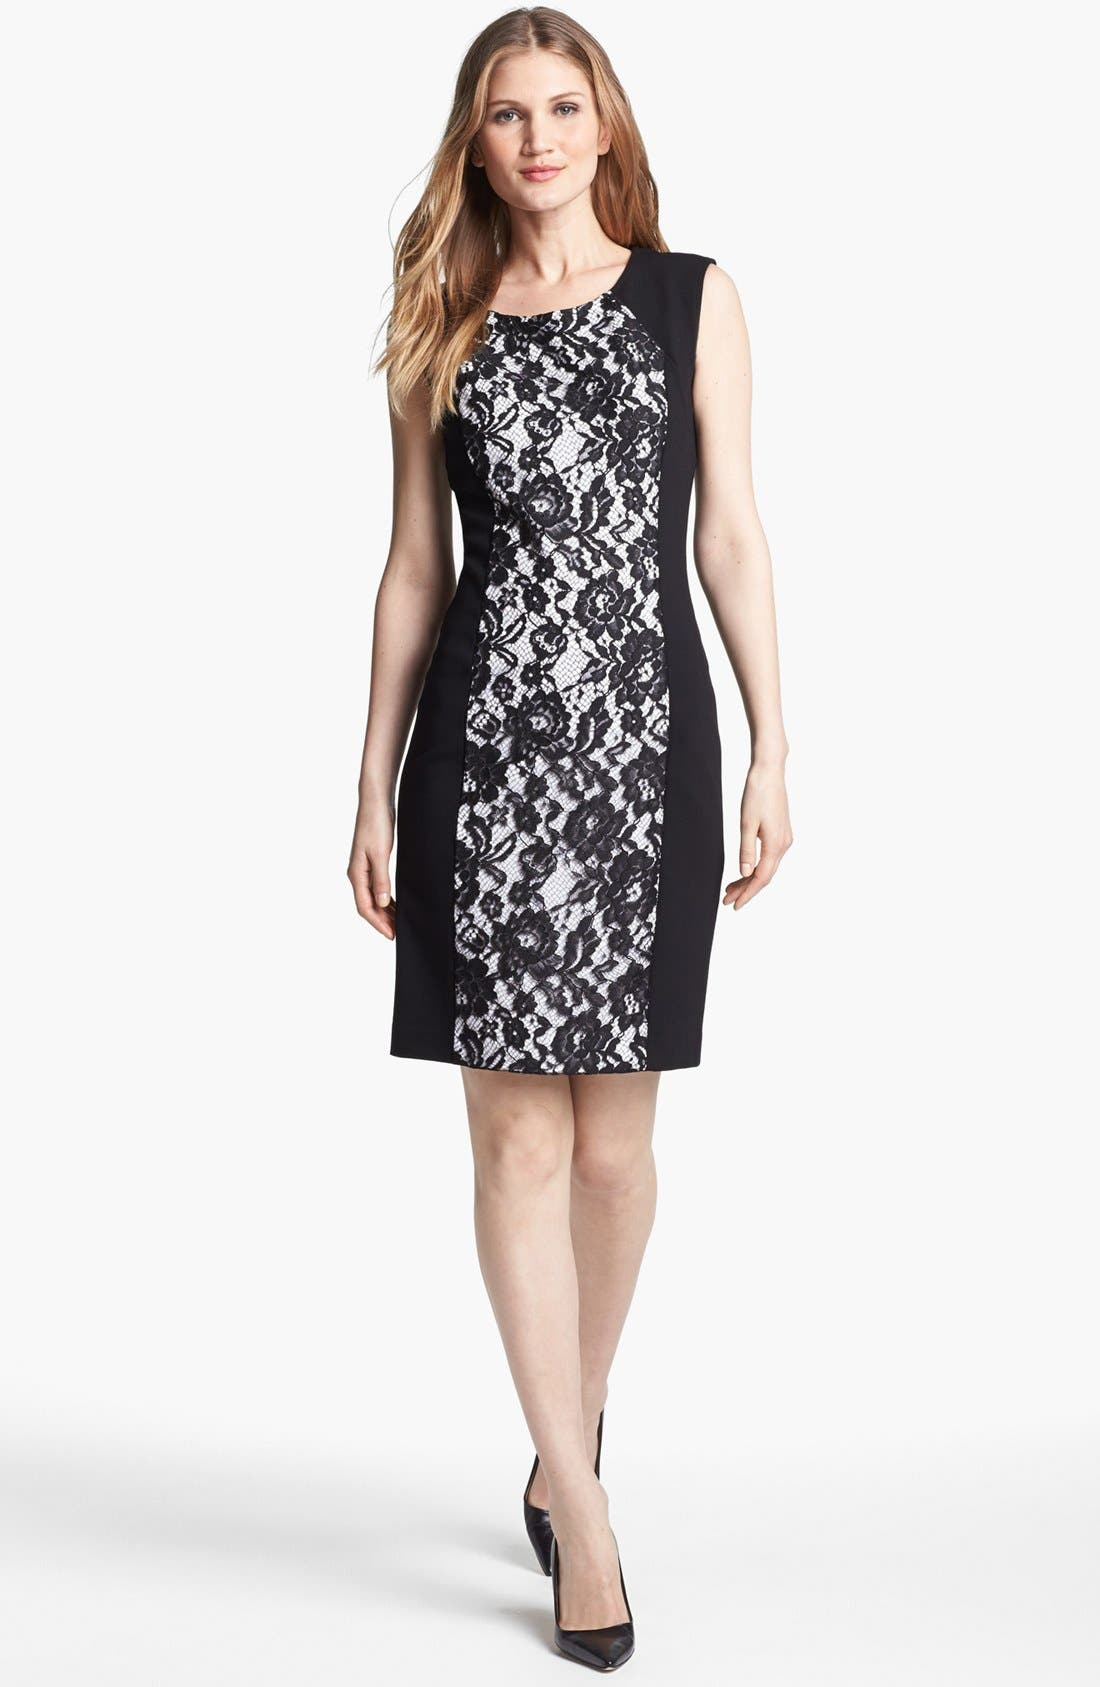 Alternate Image 1 Selected - Lafayette 148 New York Lace Front Punto Milano Dress